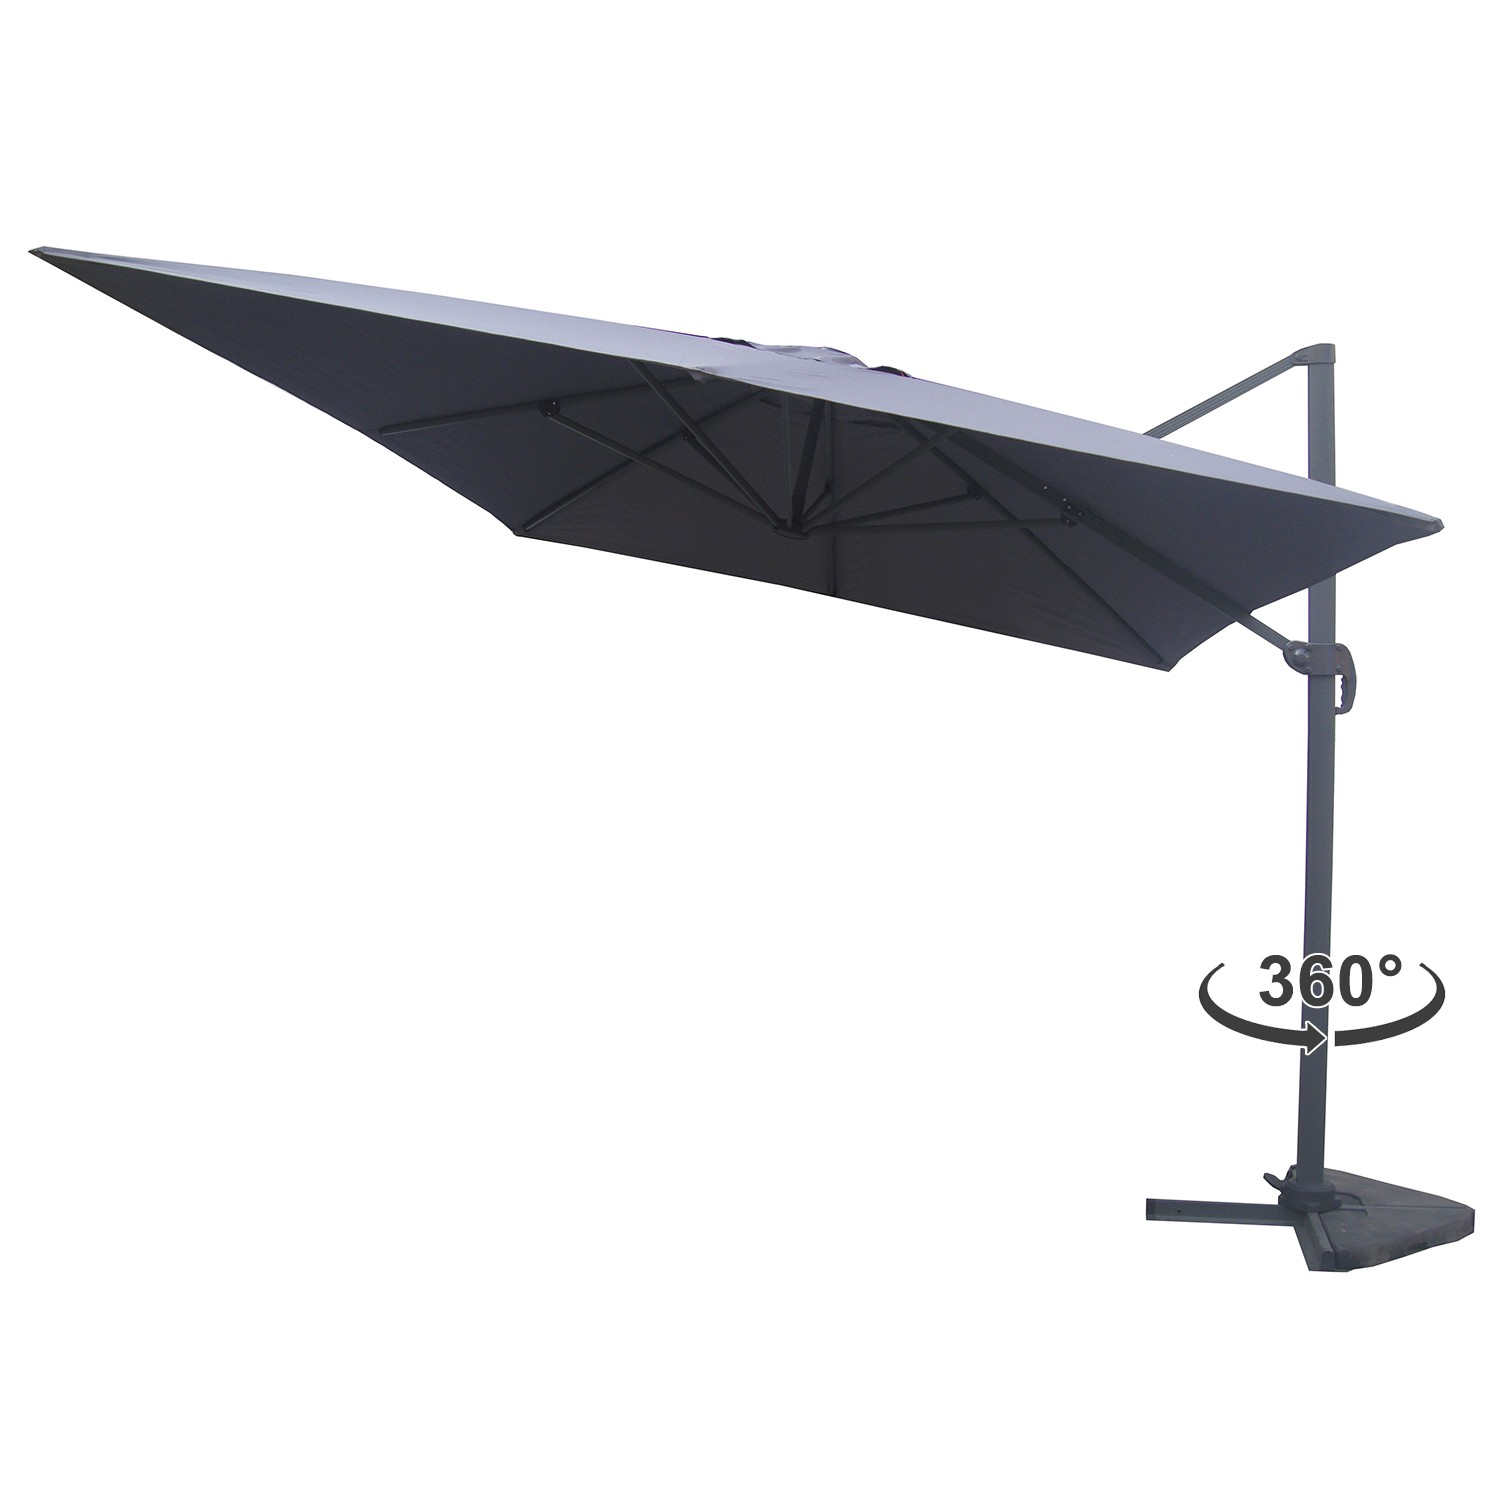 strand gris parasol d port rectangulaire 3x4m rotatif 360 parasols parasols et. Black Bedroom Furniture Sets. Home Design Ideas